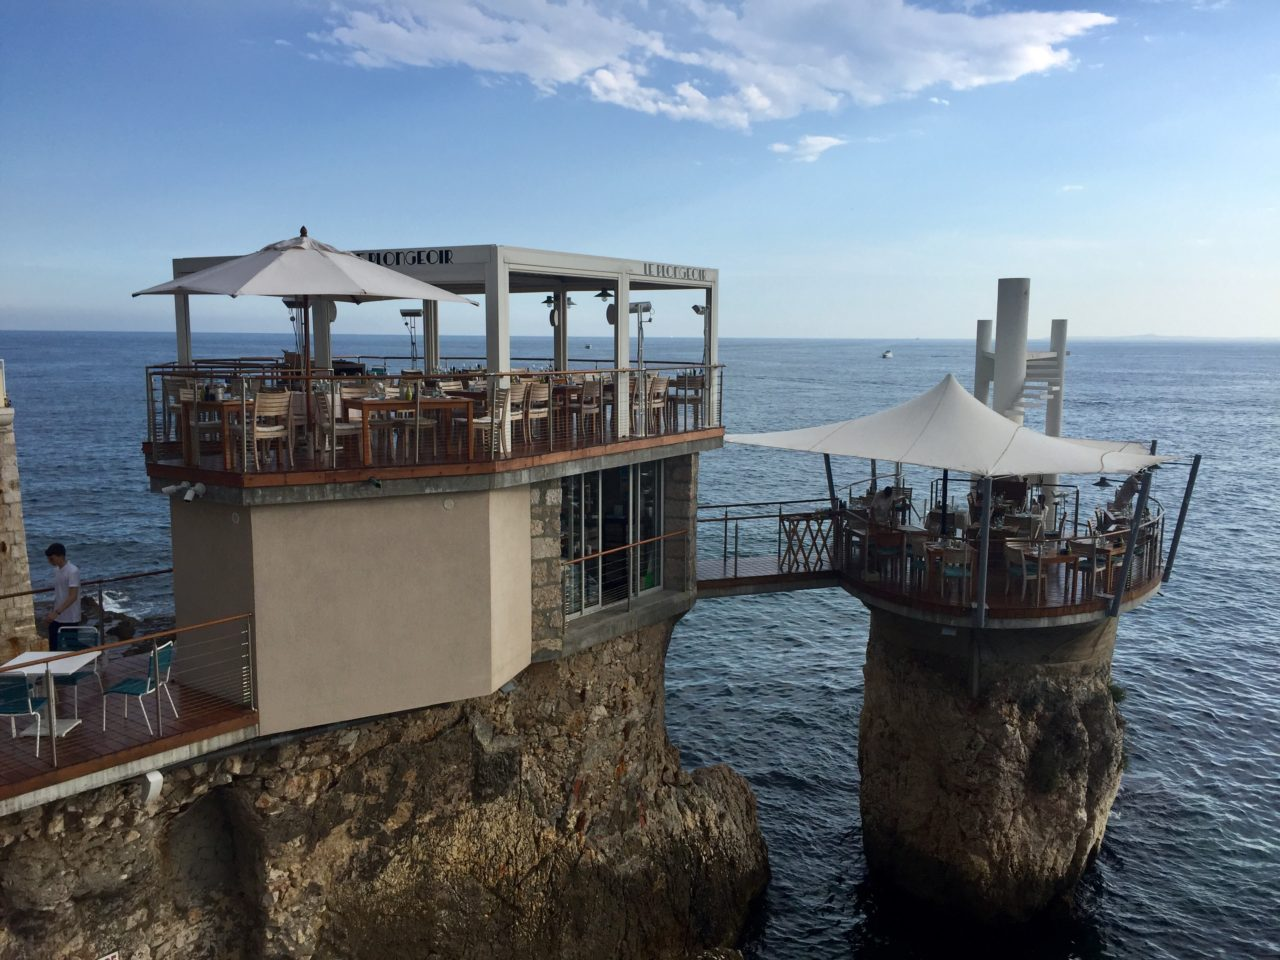 Le Plongeoir bar and restaurant in Nice ~ When in Nice, we live to eat !